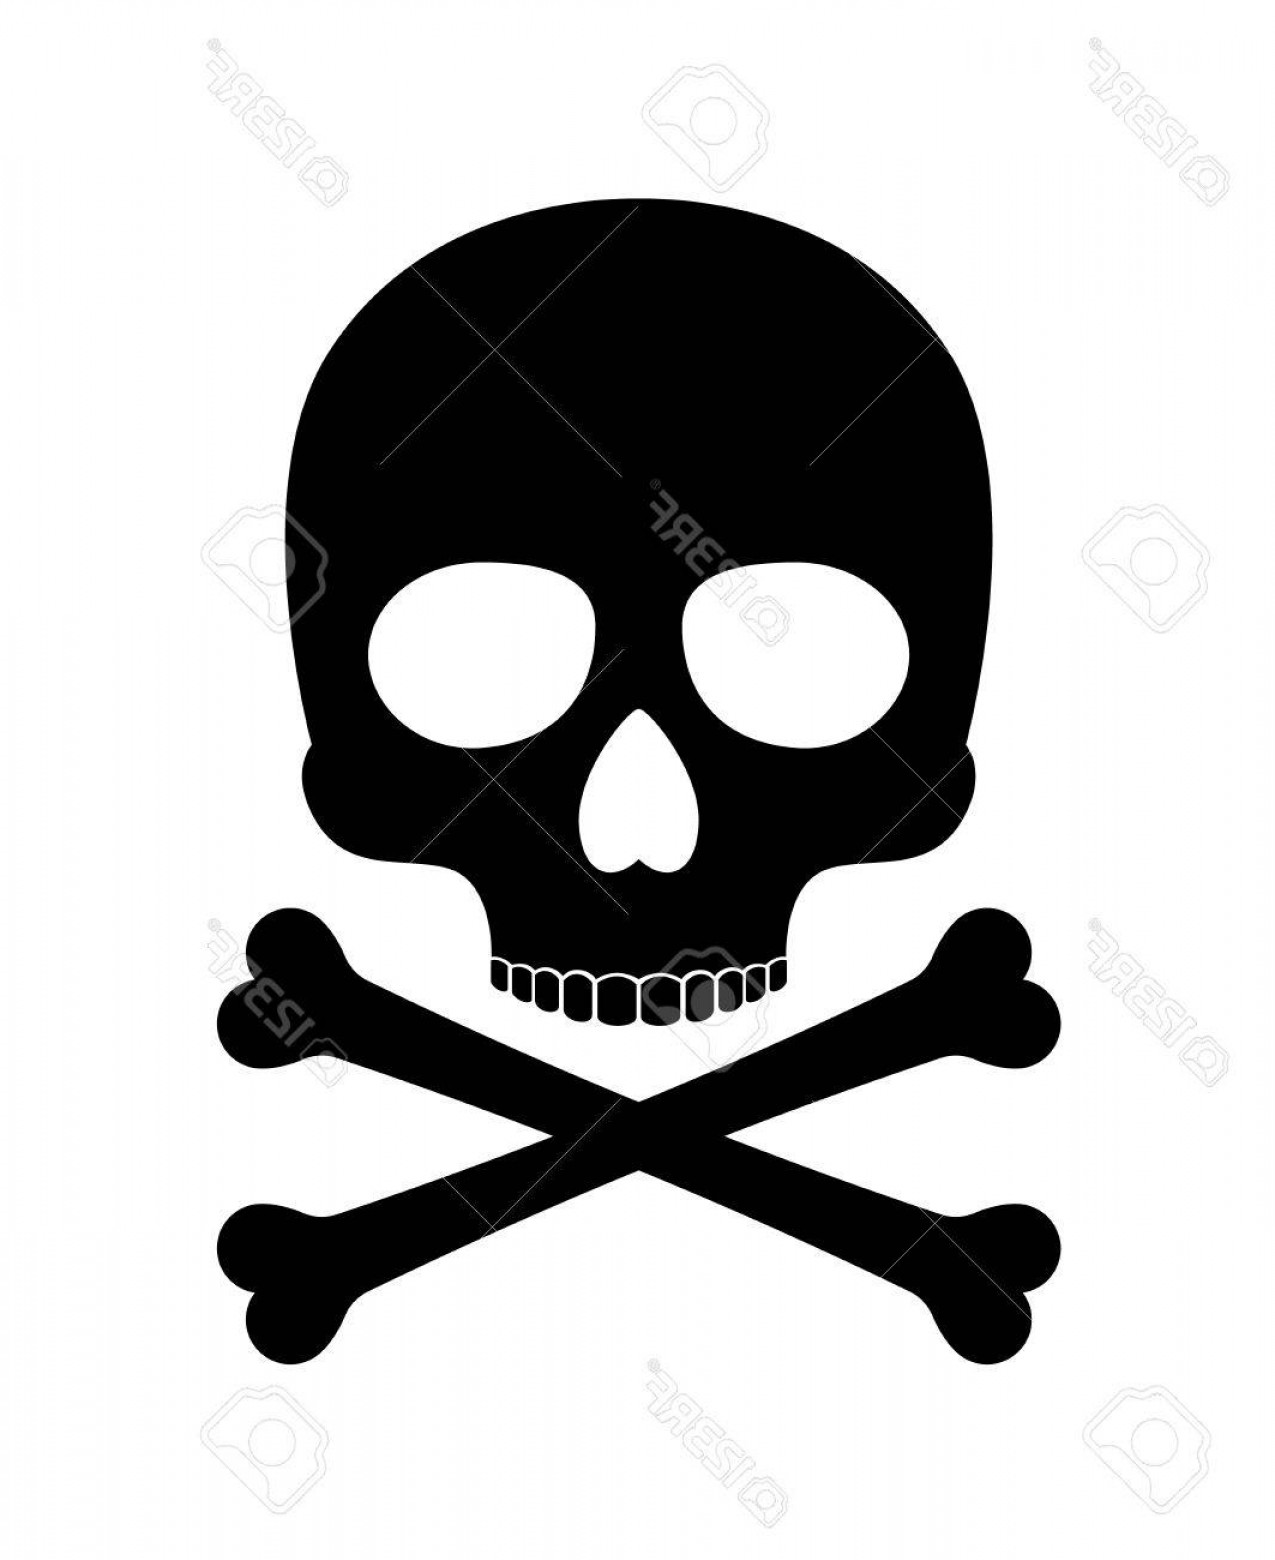 Skull ND Crossbones Vector: Photostock Vector Skull Vector Silhouette Crossbones Skull Death Icon Isolated On White Background